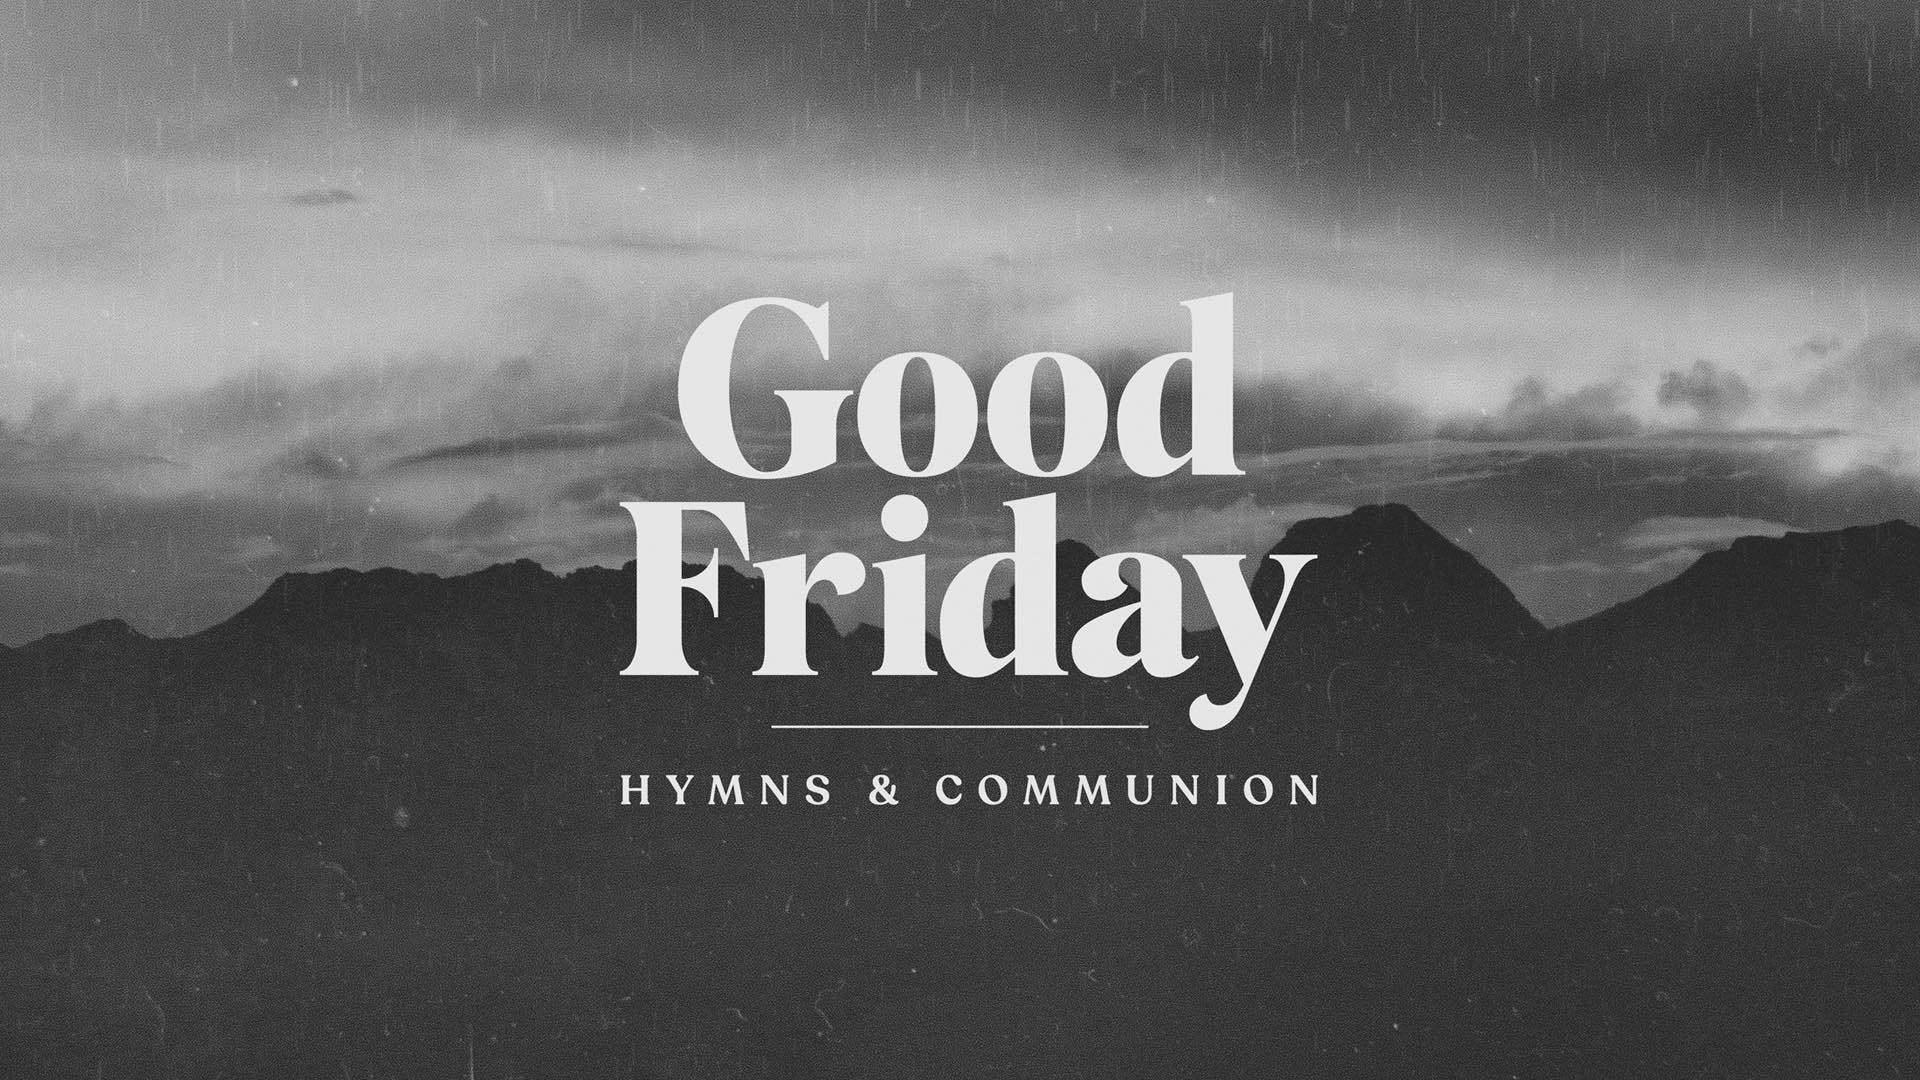 Good Friday Hymns & Communion